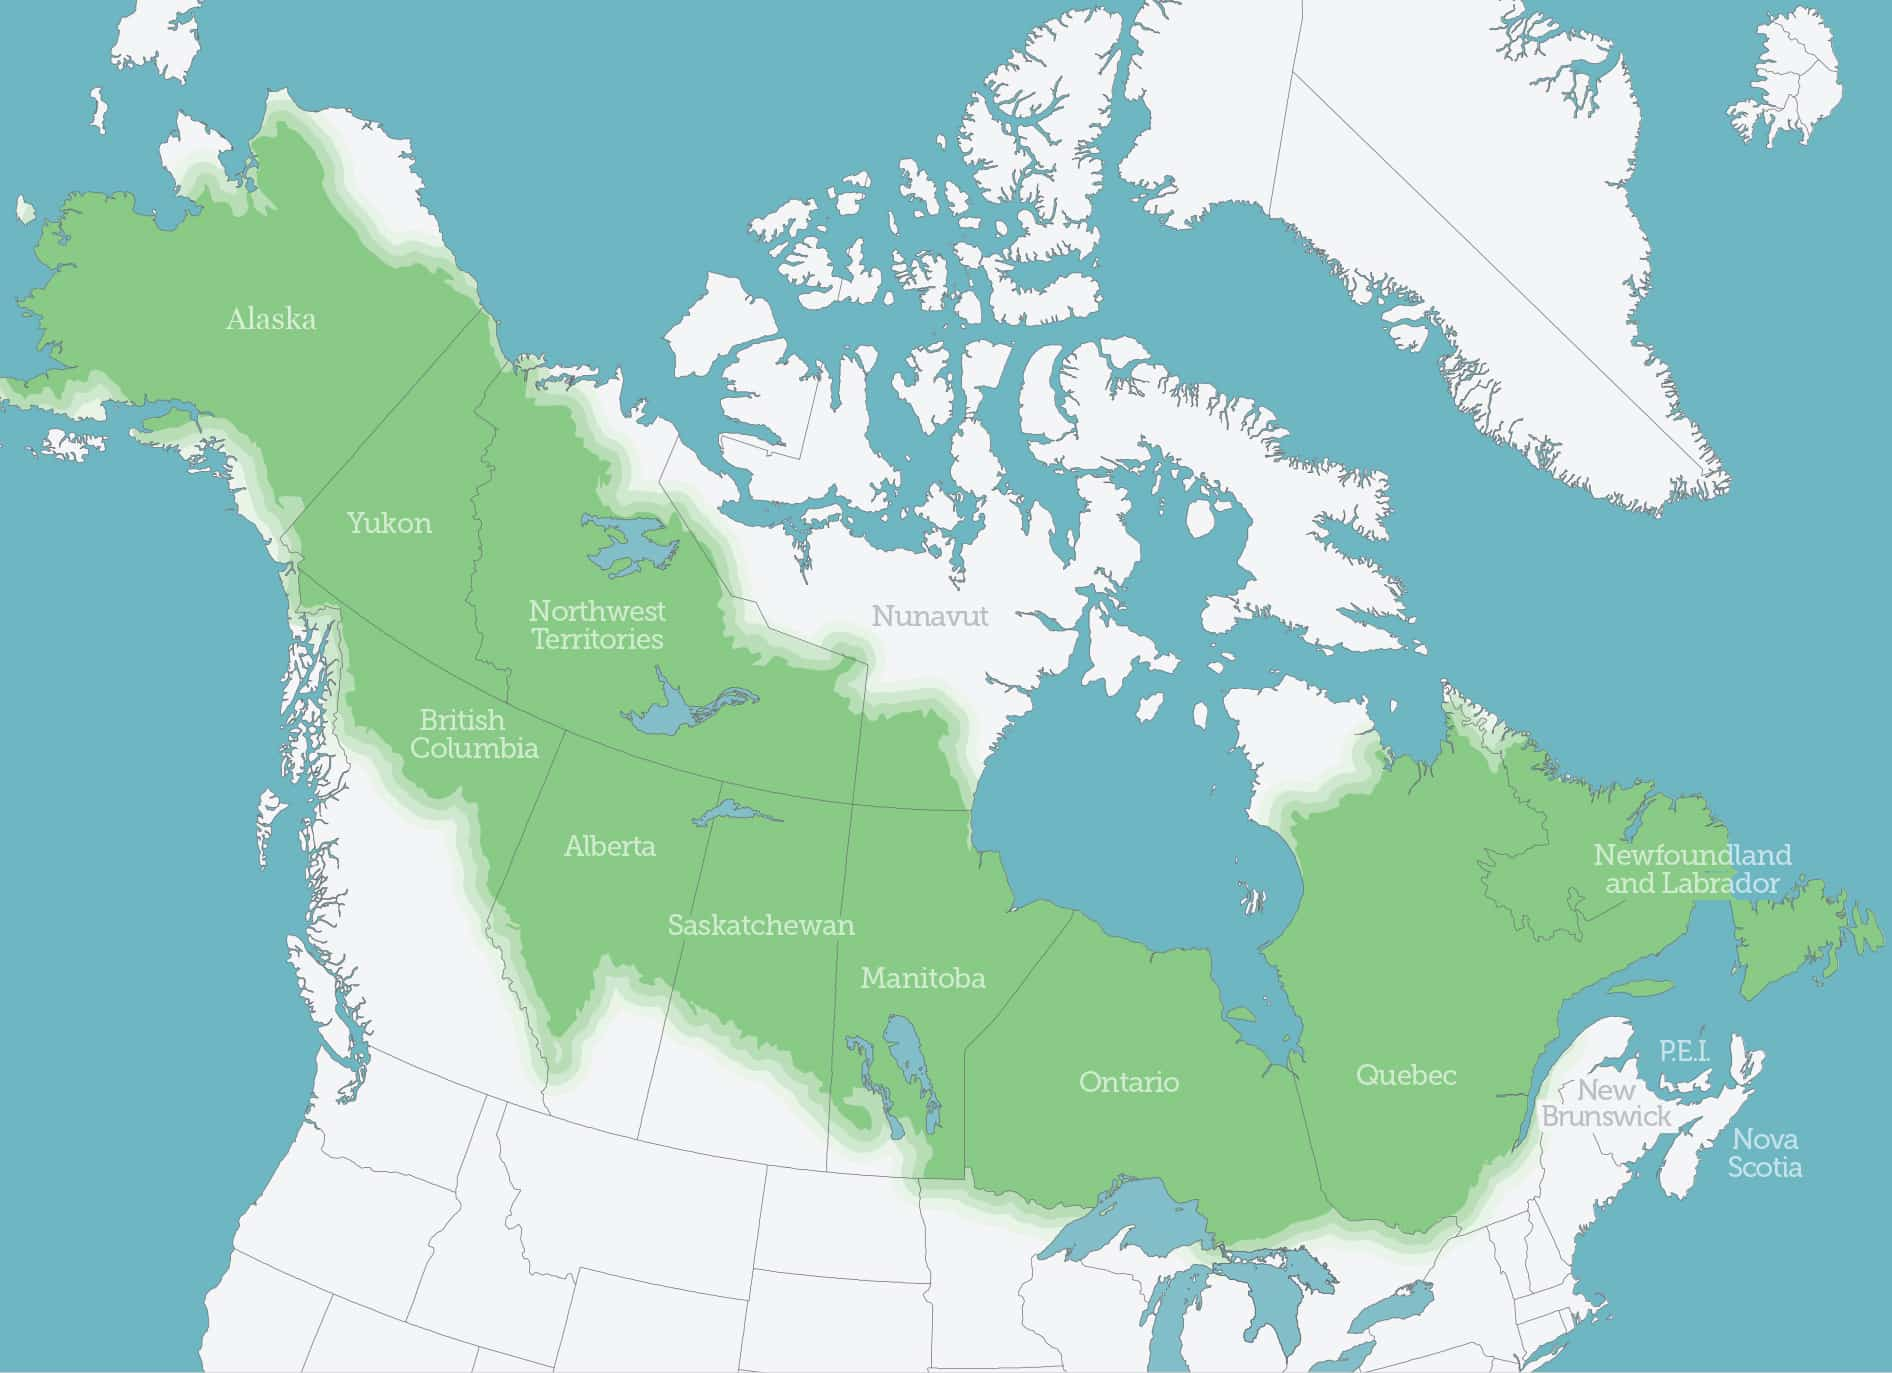 a map of boreal forest coverage across Alaska and Canada